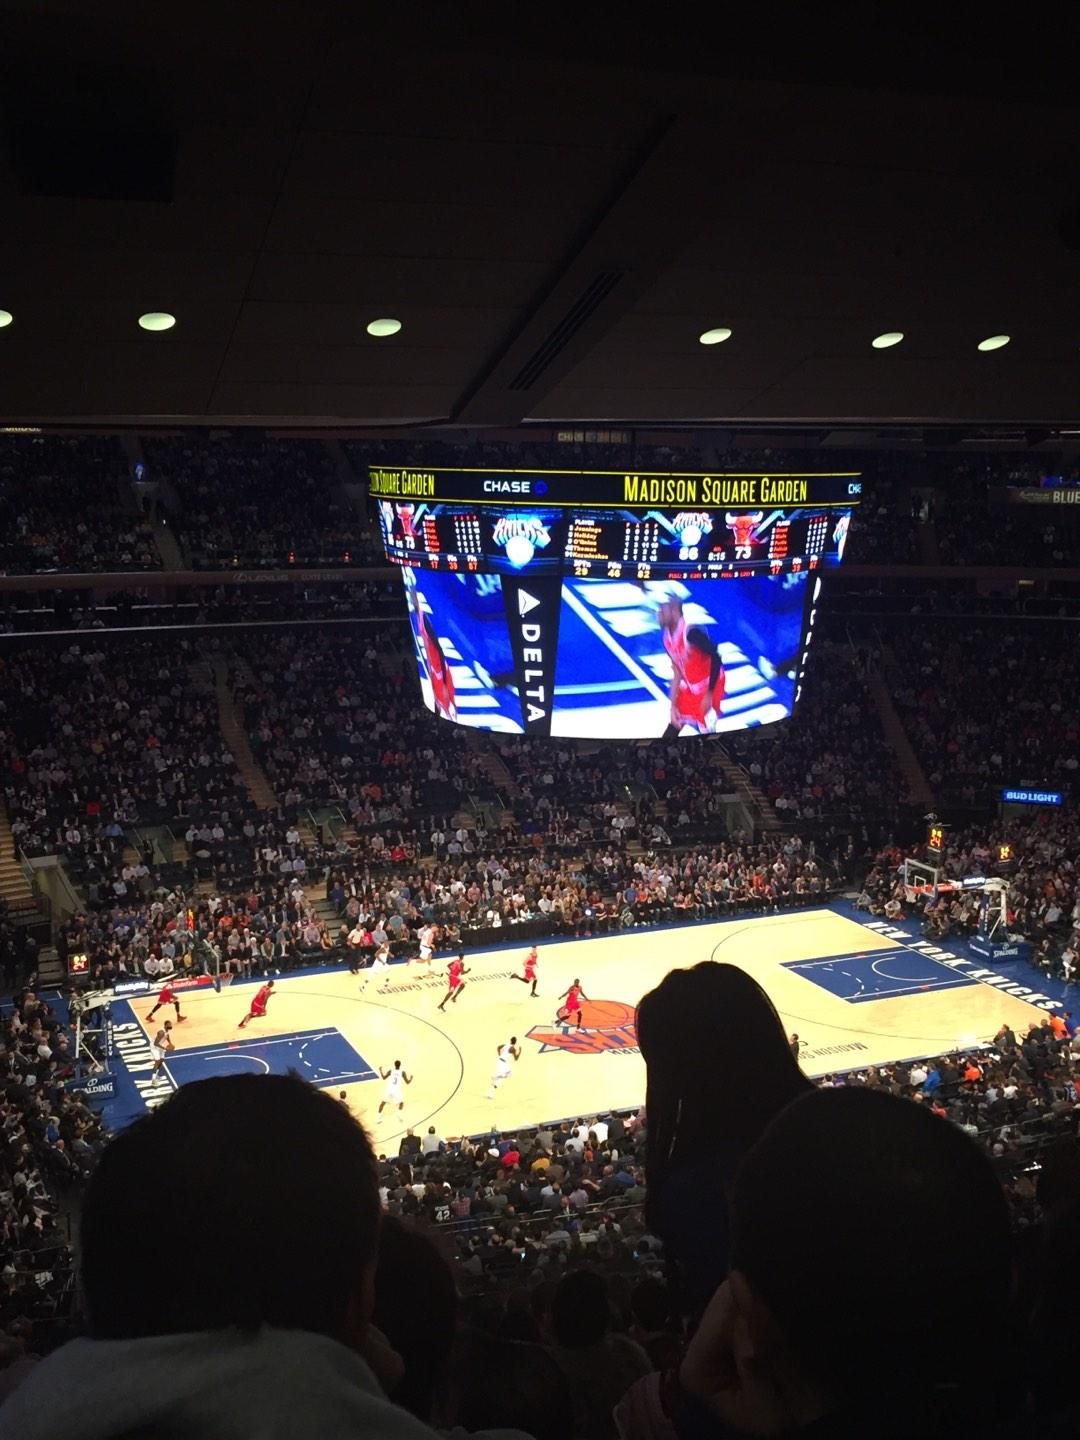 Madison Square Garden Section 209 Row 14 Seat 11-14